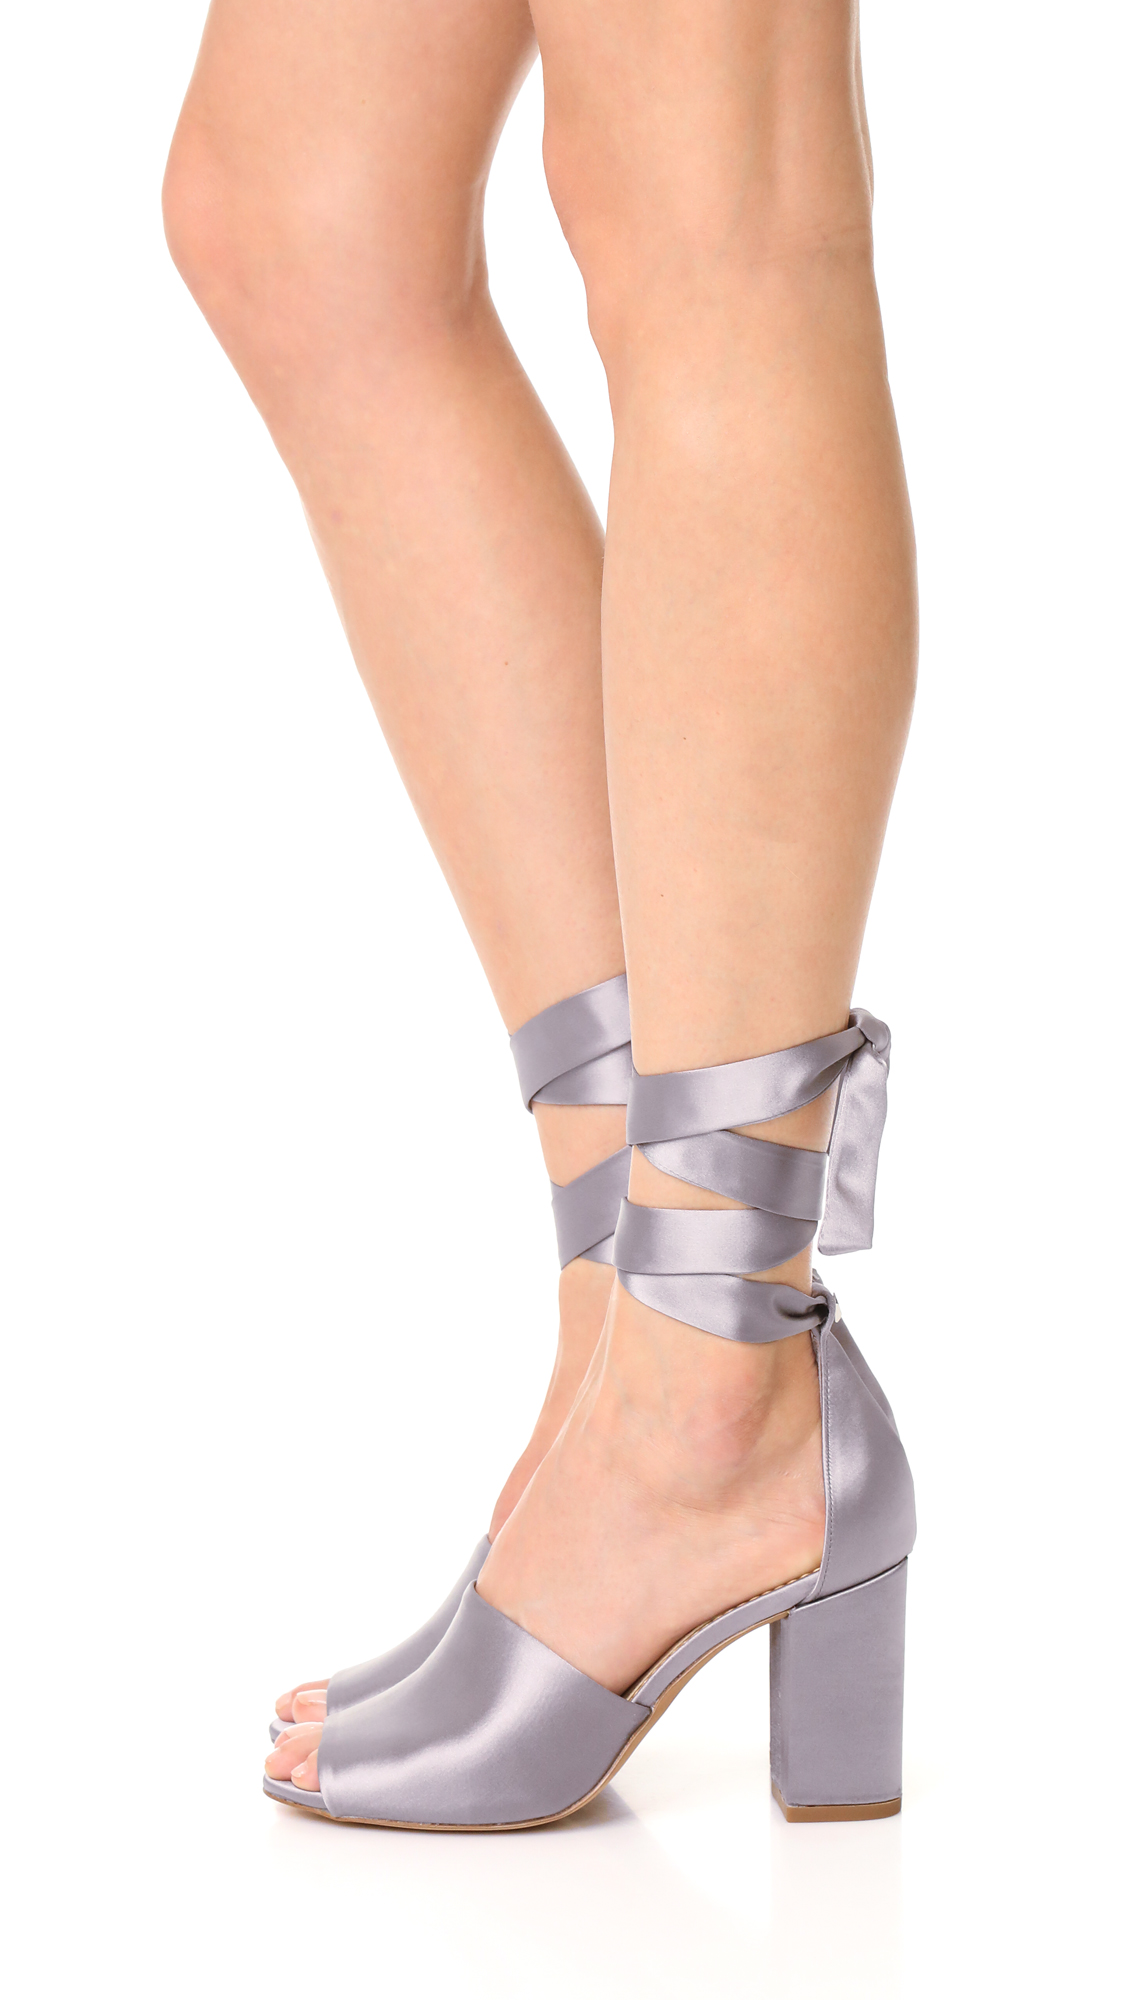 Odele Ankle Wrap Sandal 100% authentic cheap price discount free shipping clearance 100% original new for sale 8MAczX